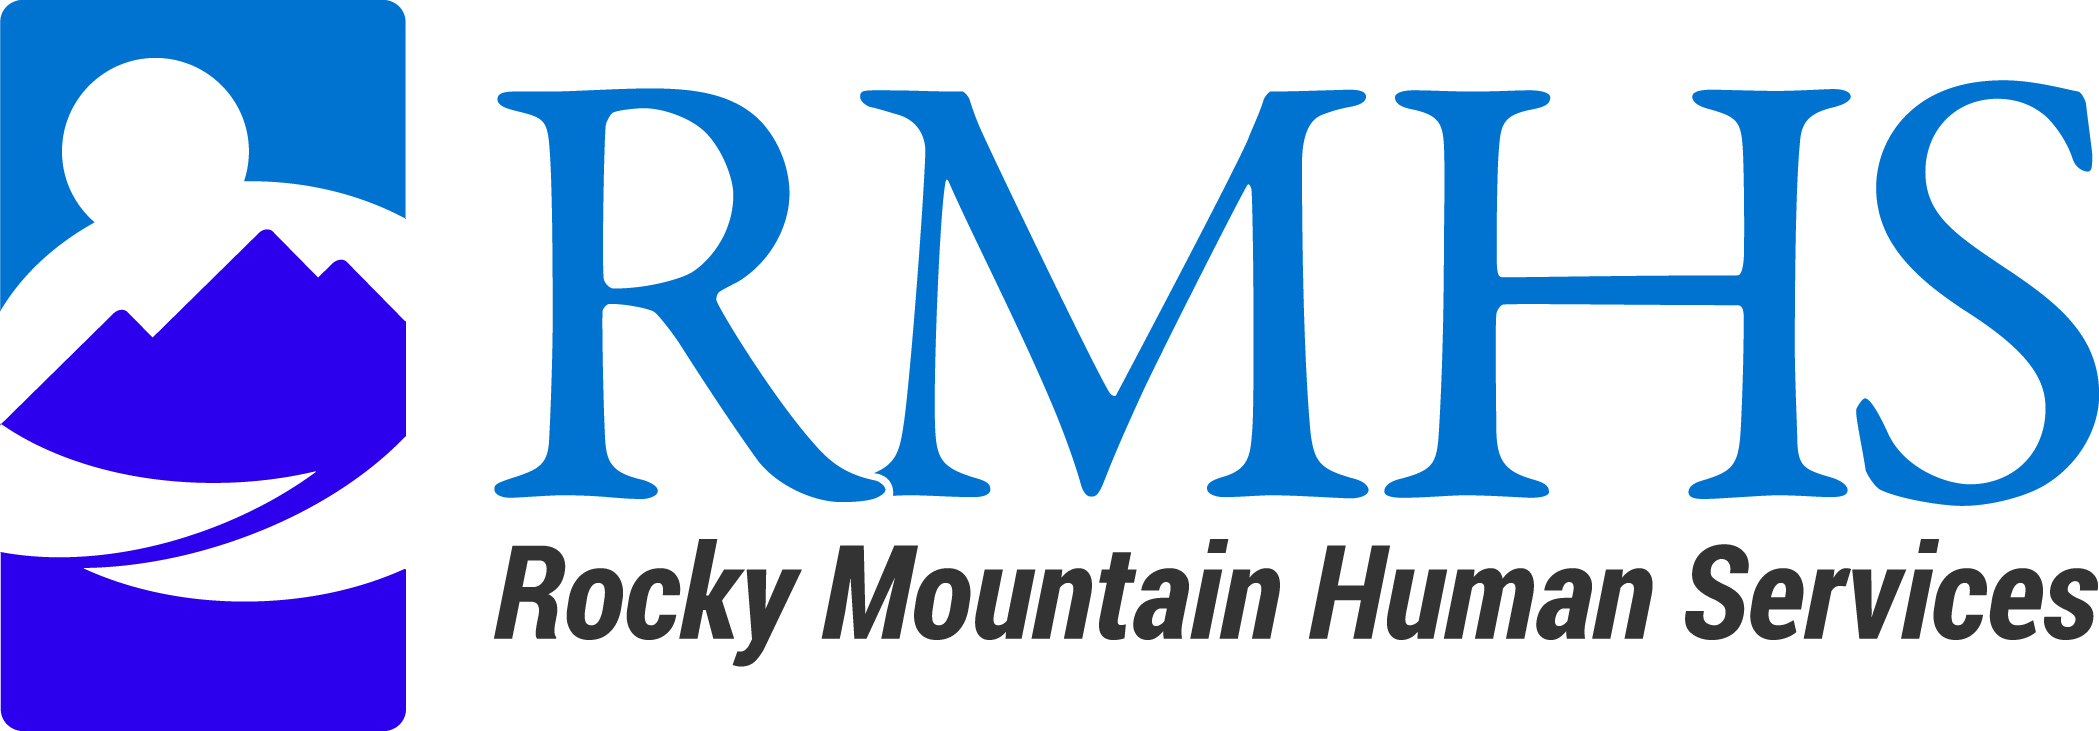 9. Rocky Mountain Human Services